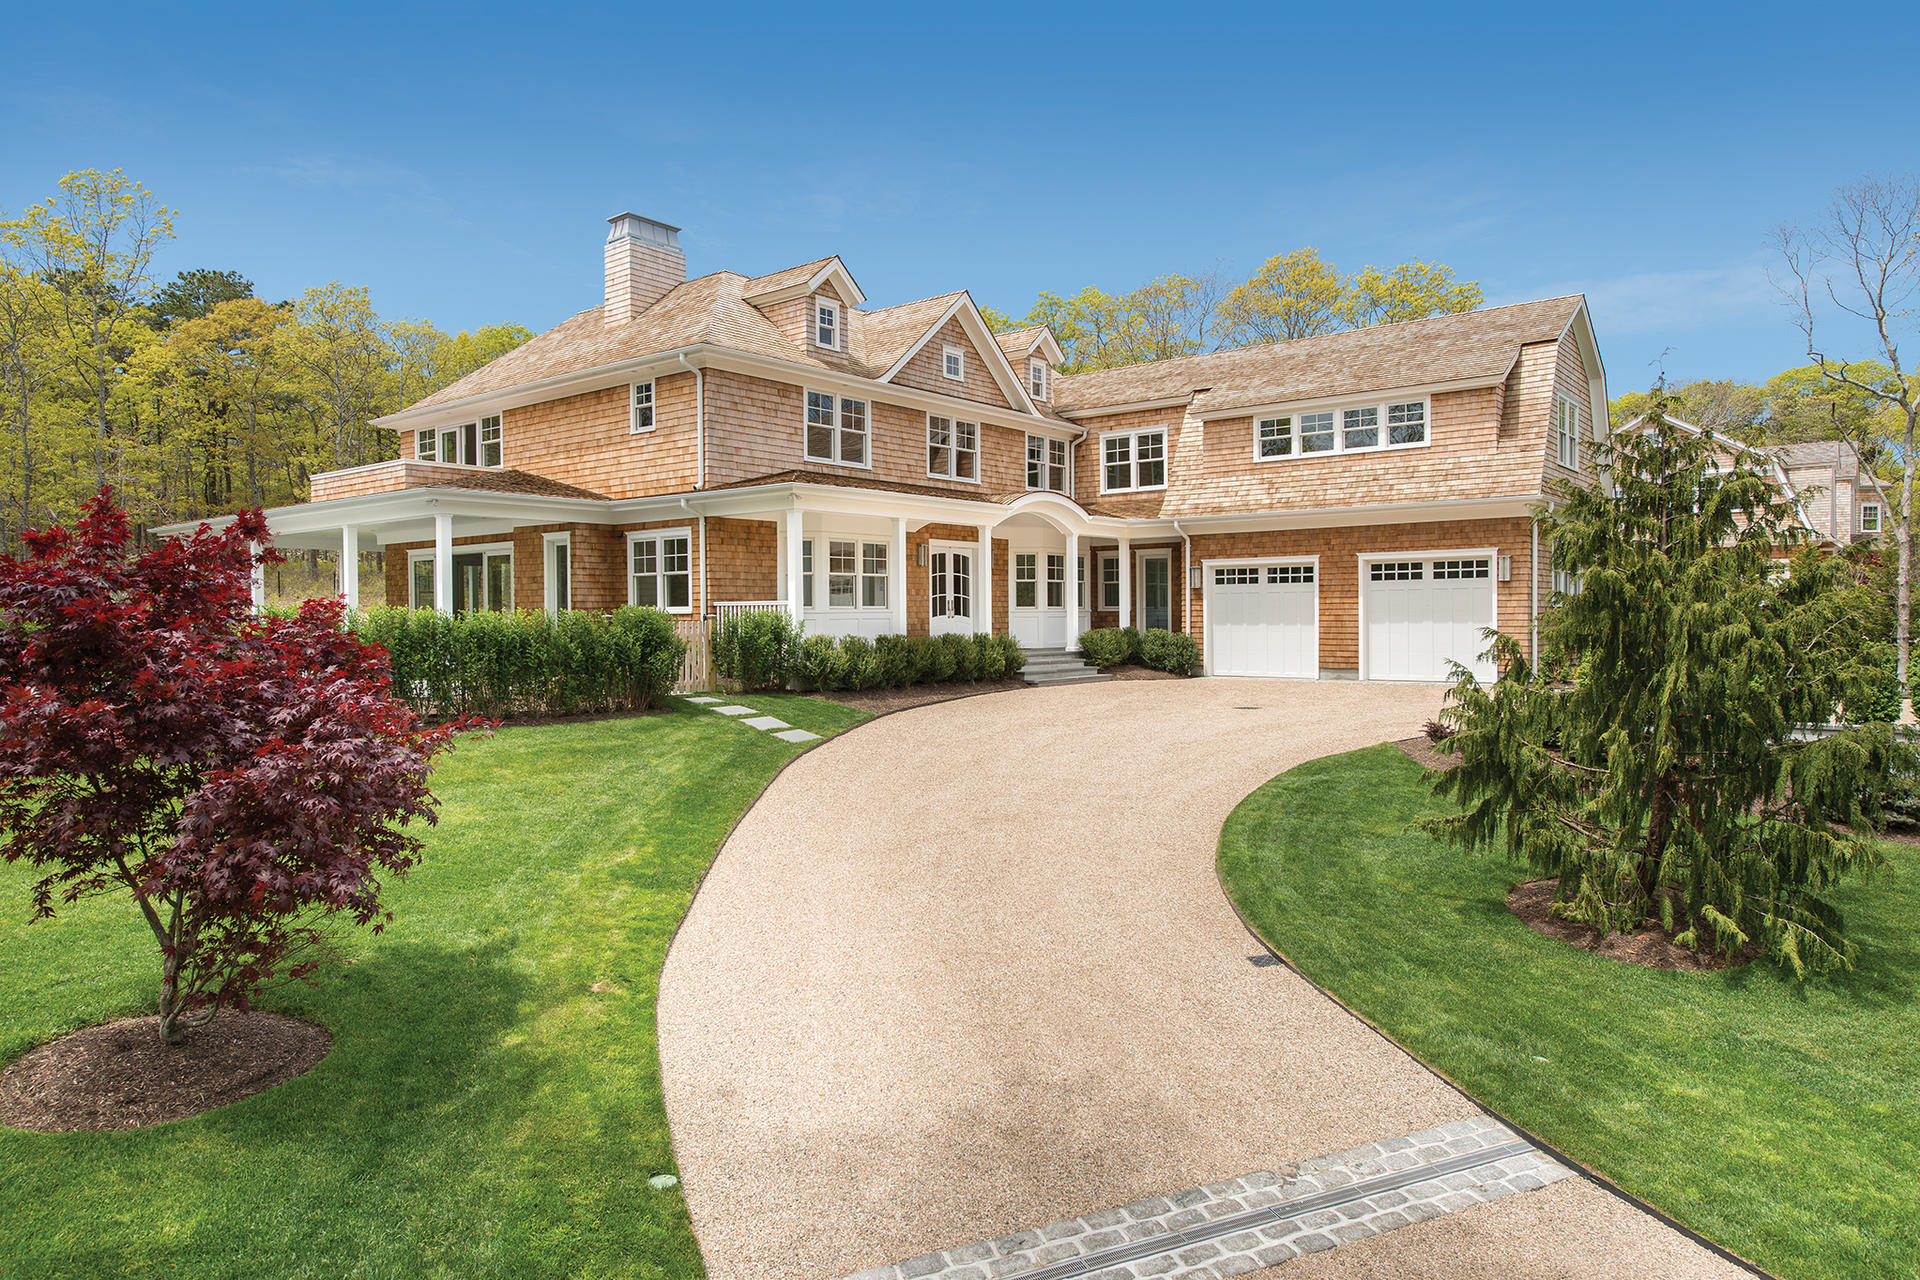 Single Family Home for Sale at New Construction With Private Backyard 2 Rose Court, Southampton, New York